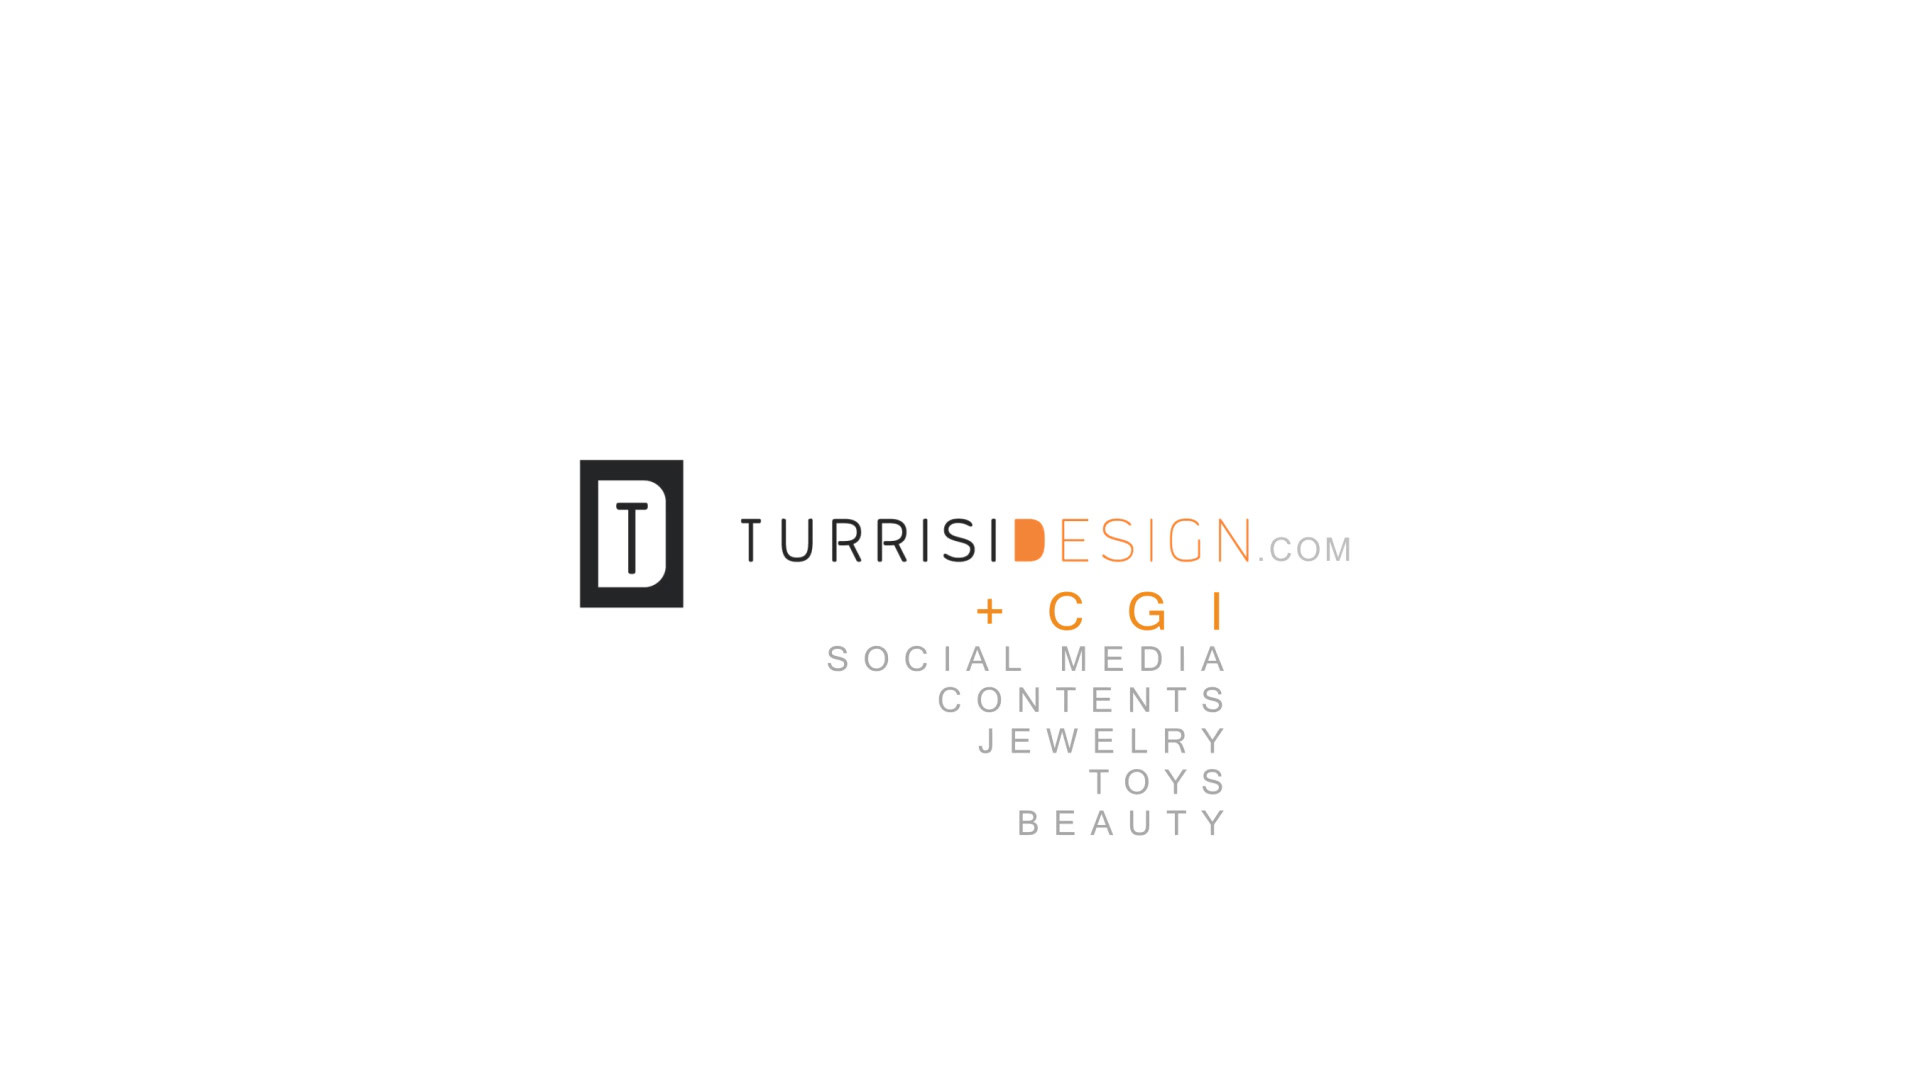 """Turrisidesign """"Do You Feel Unseen?"""" campaign"""